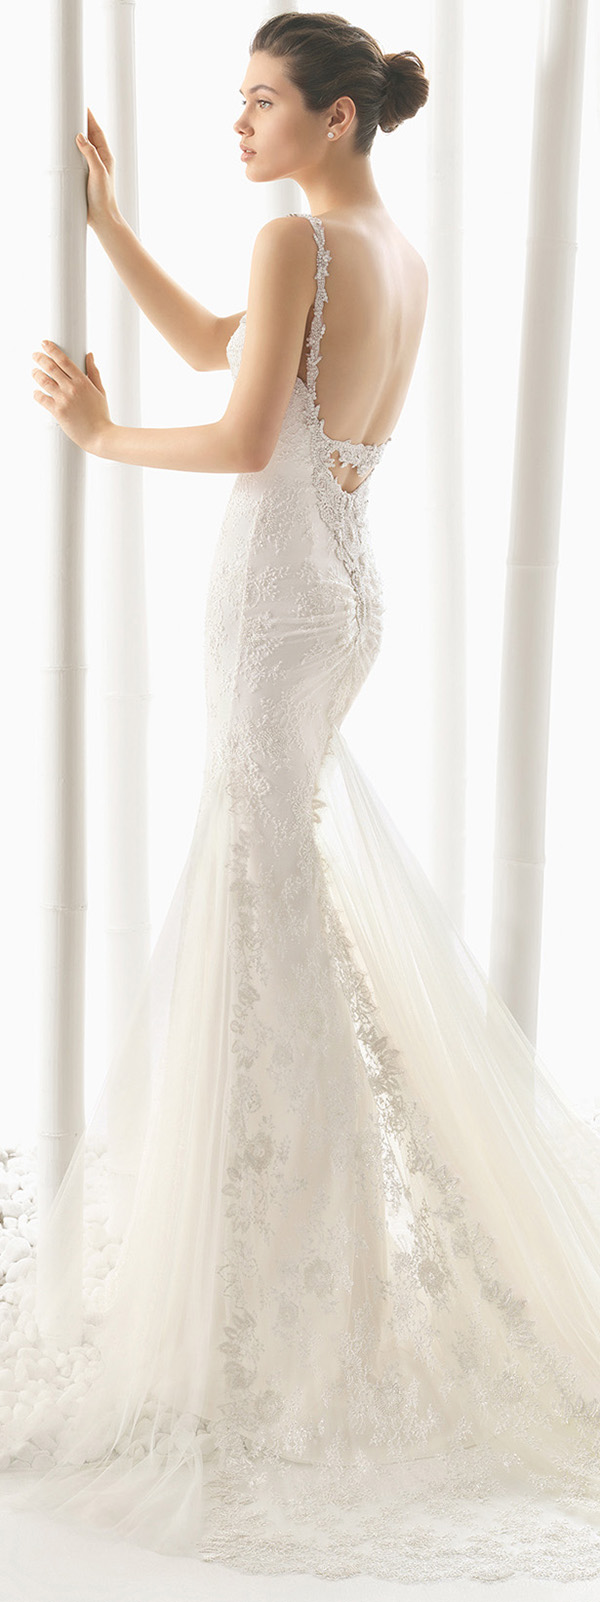 rosa clara dogma mermaid wedding dresses with sequins details back view